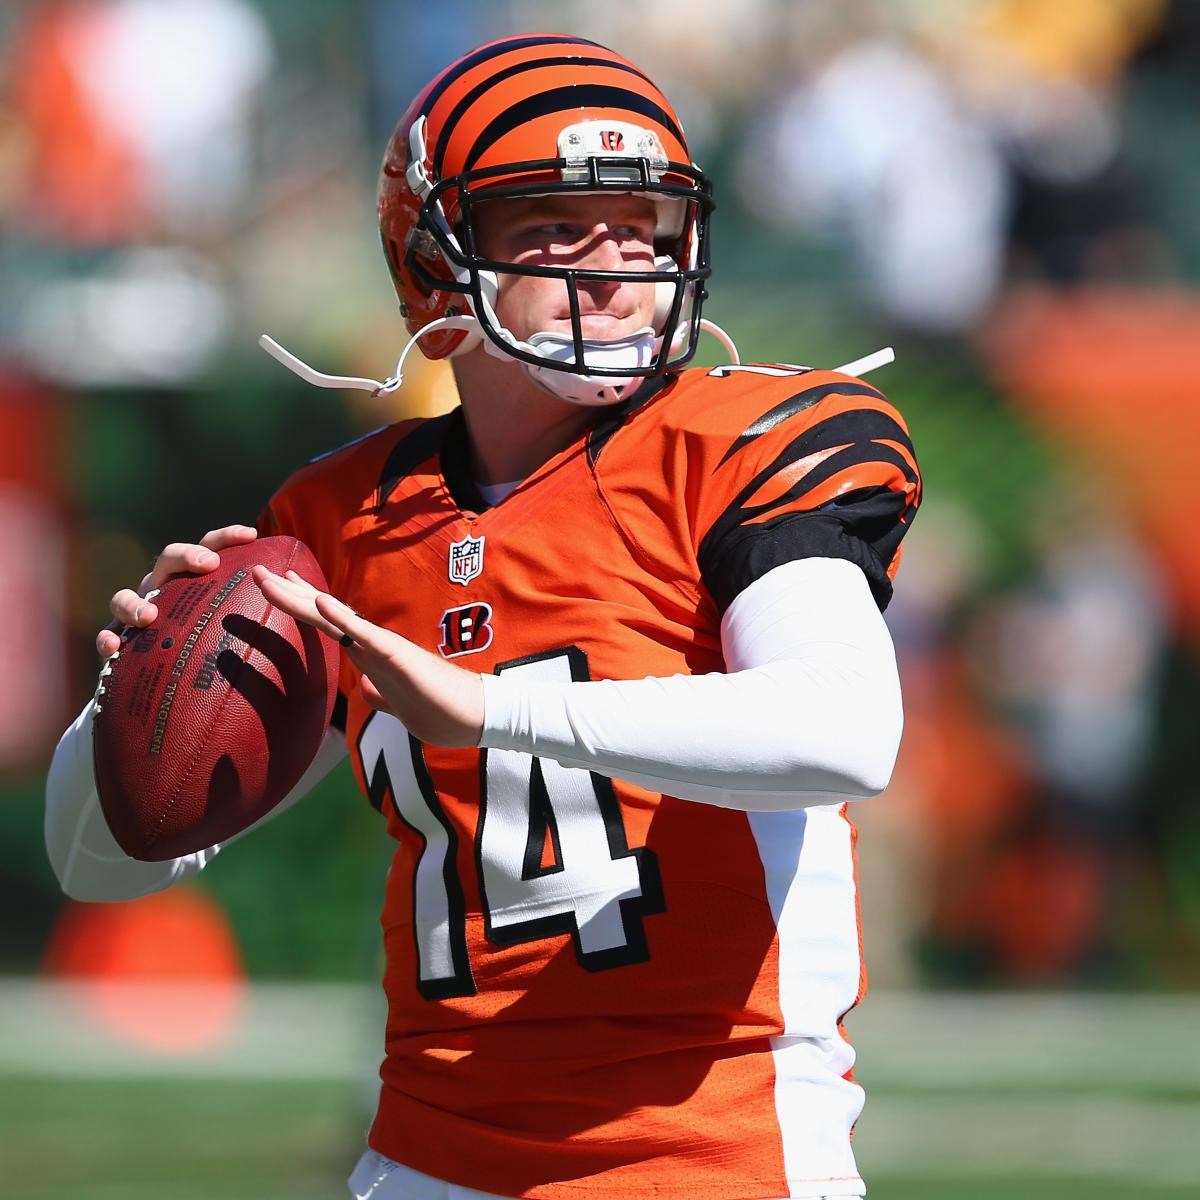 San Diego Chargers Cincinnati Bengals: Chargers Vs. Bengals: Keys To Victory For Each Team In